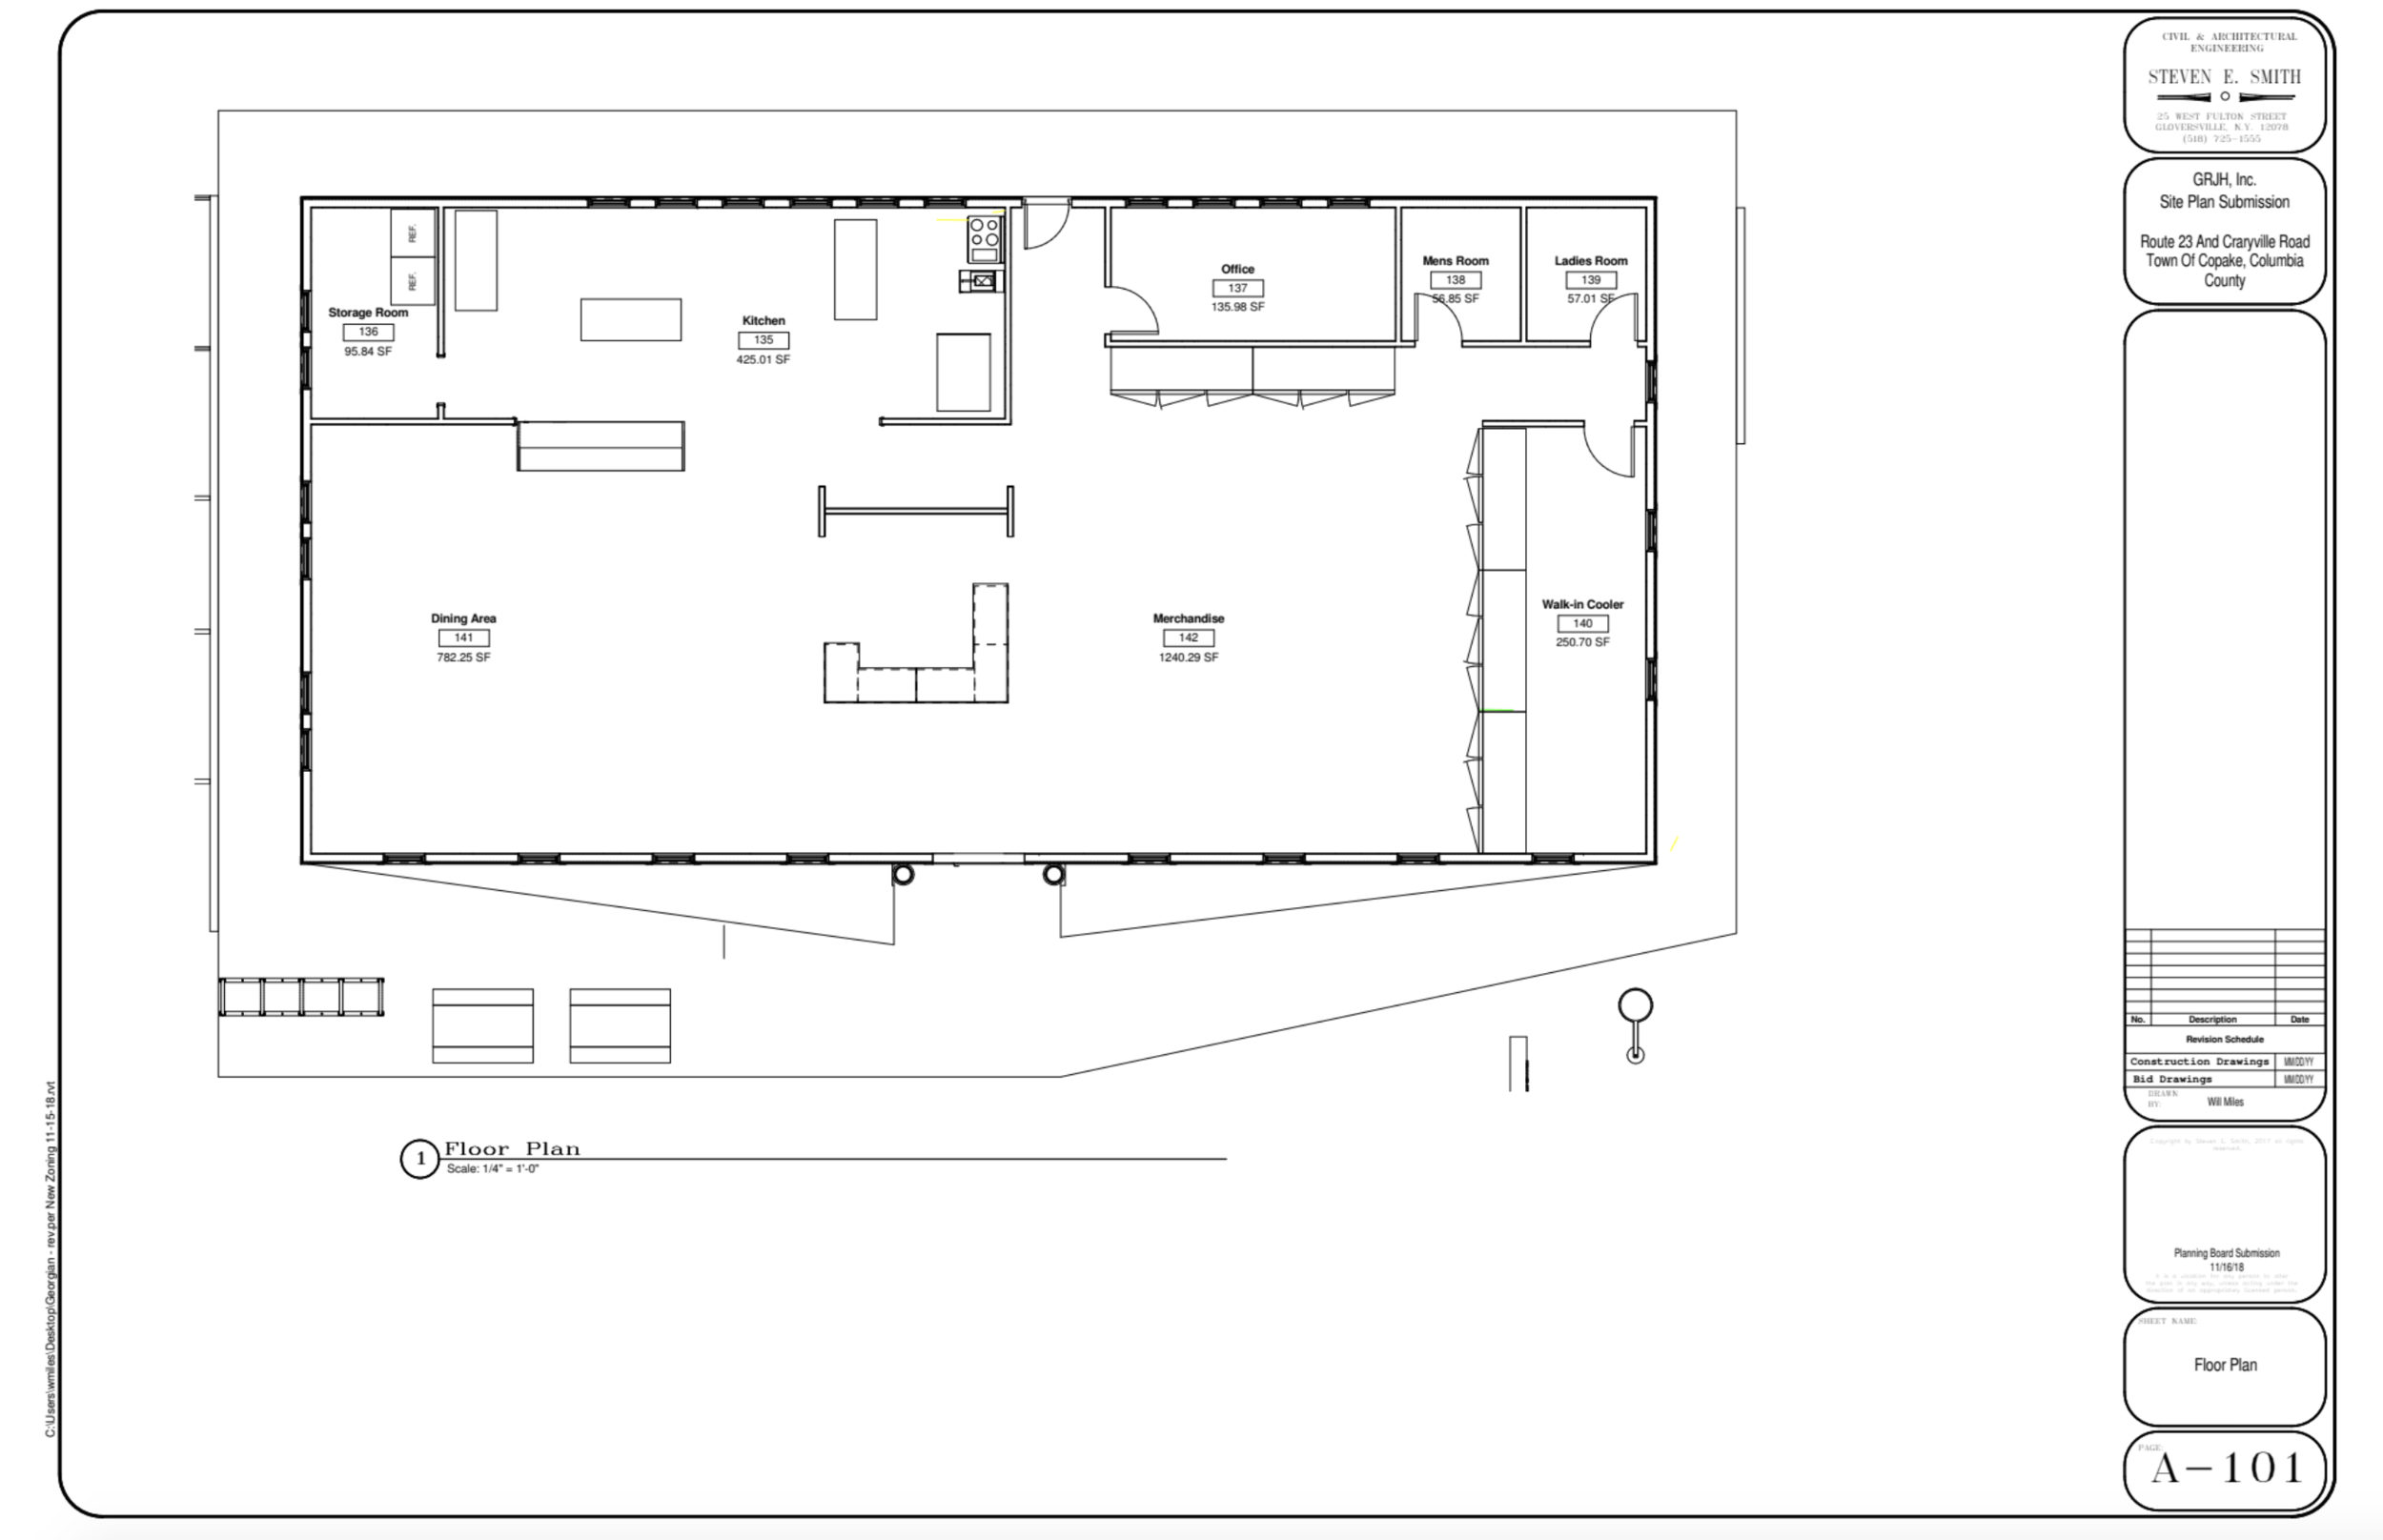 Concept Floor Plan submitted October 10, 2018